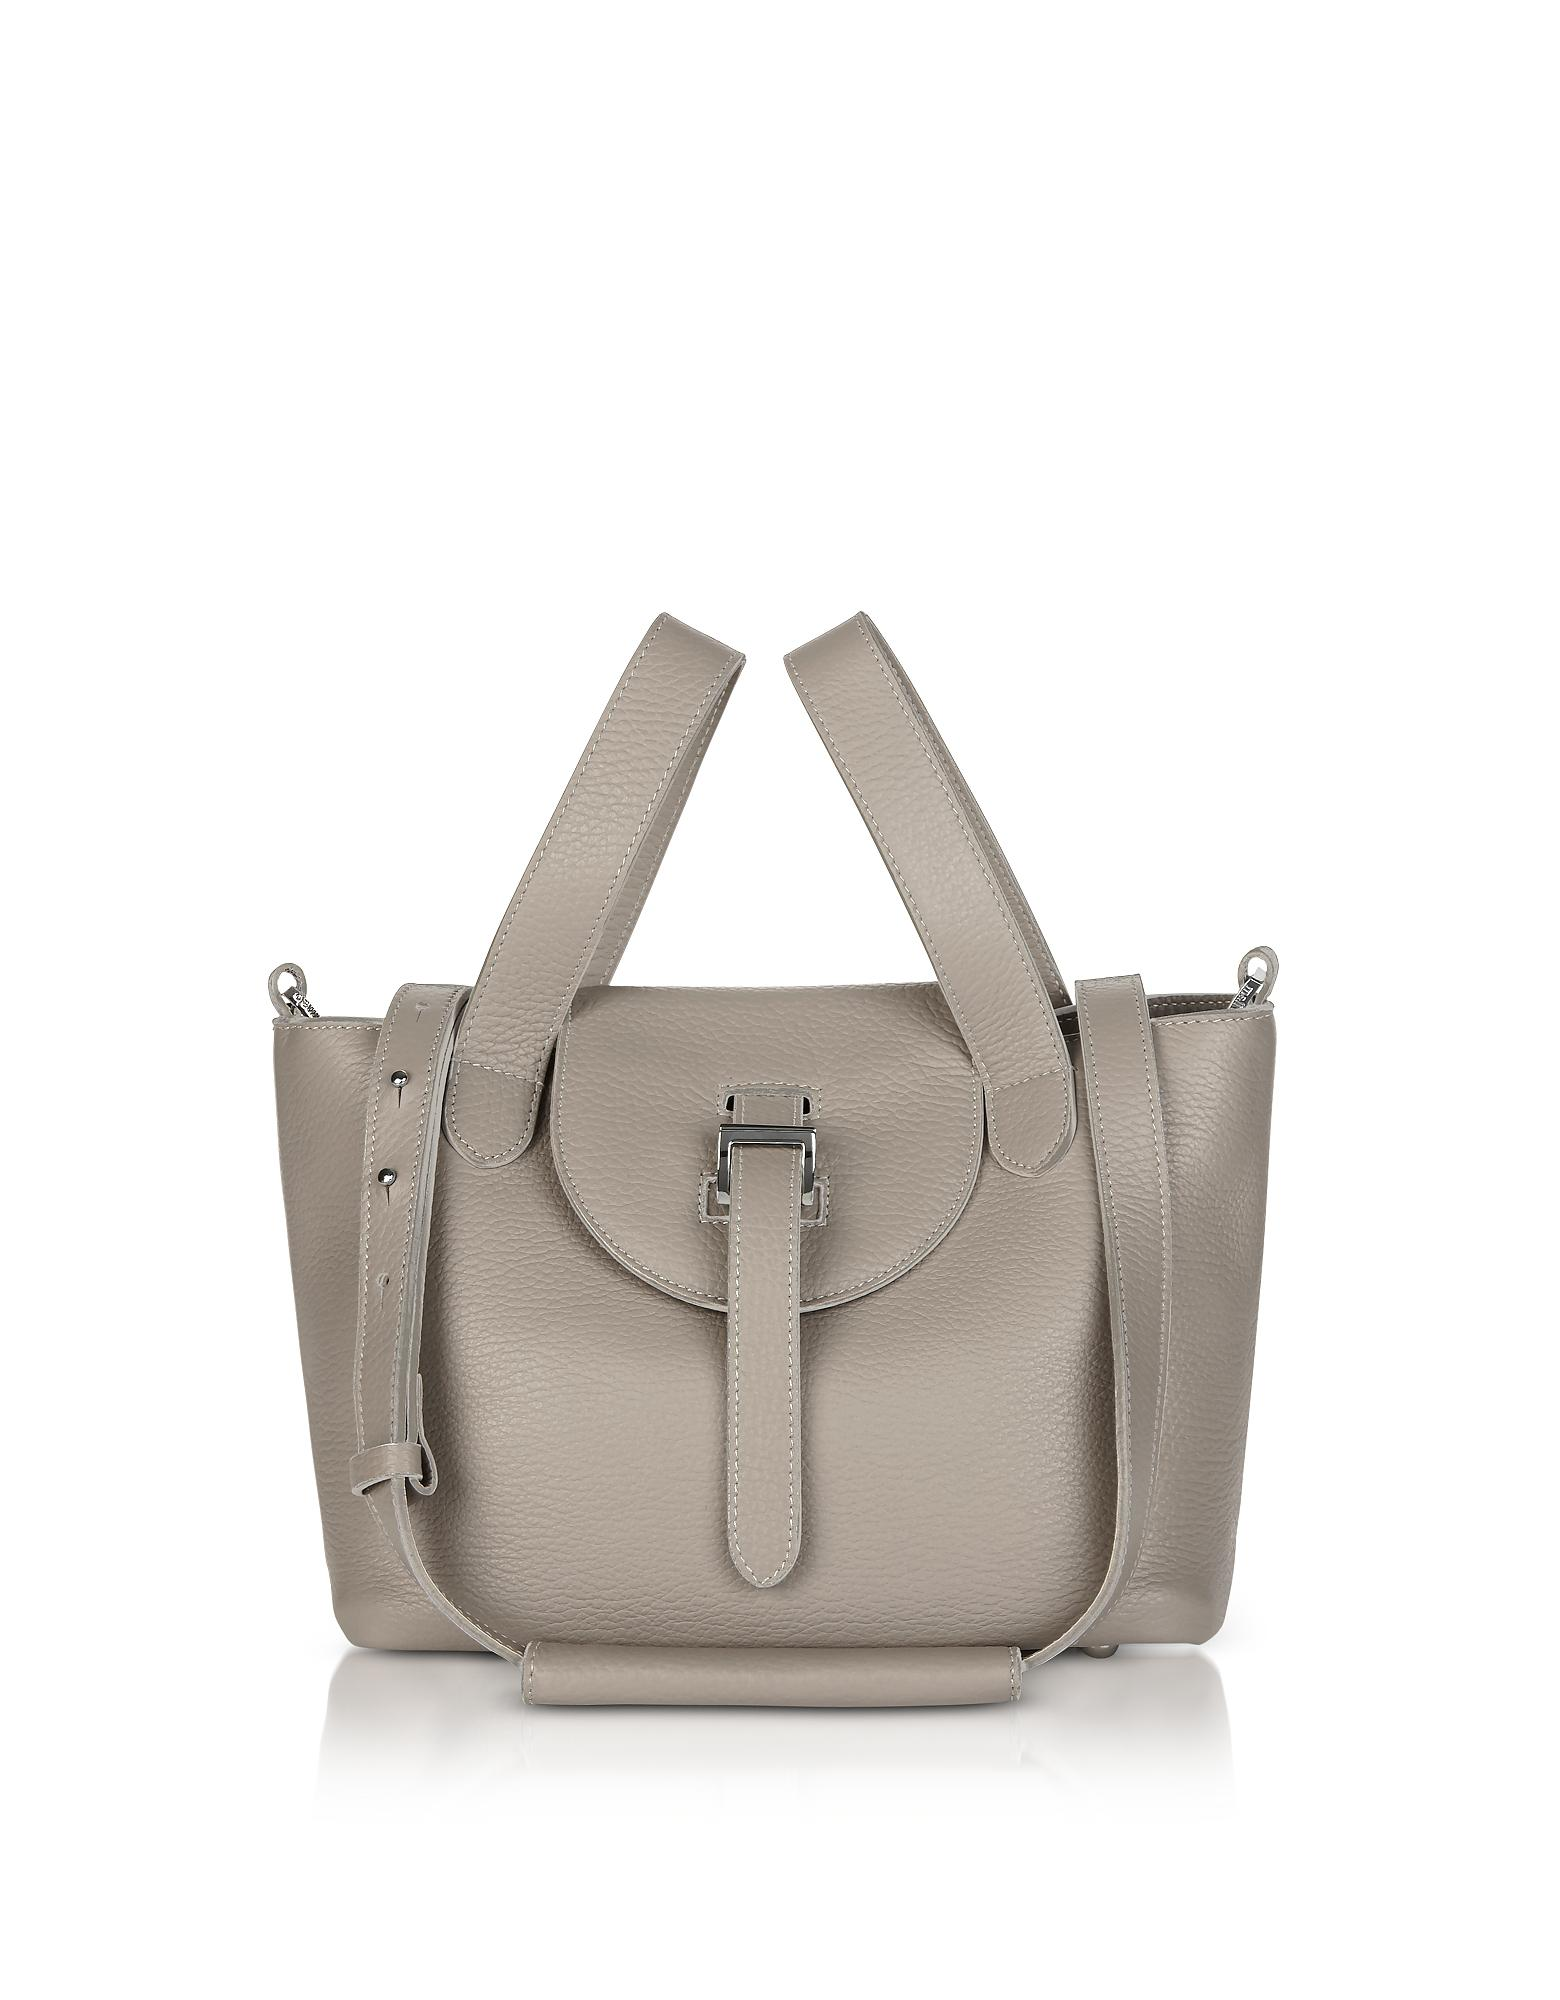 Meli Melo Handbags, Taupe Thela Mini Cross Body Bag